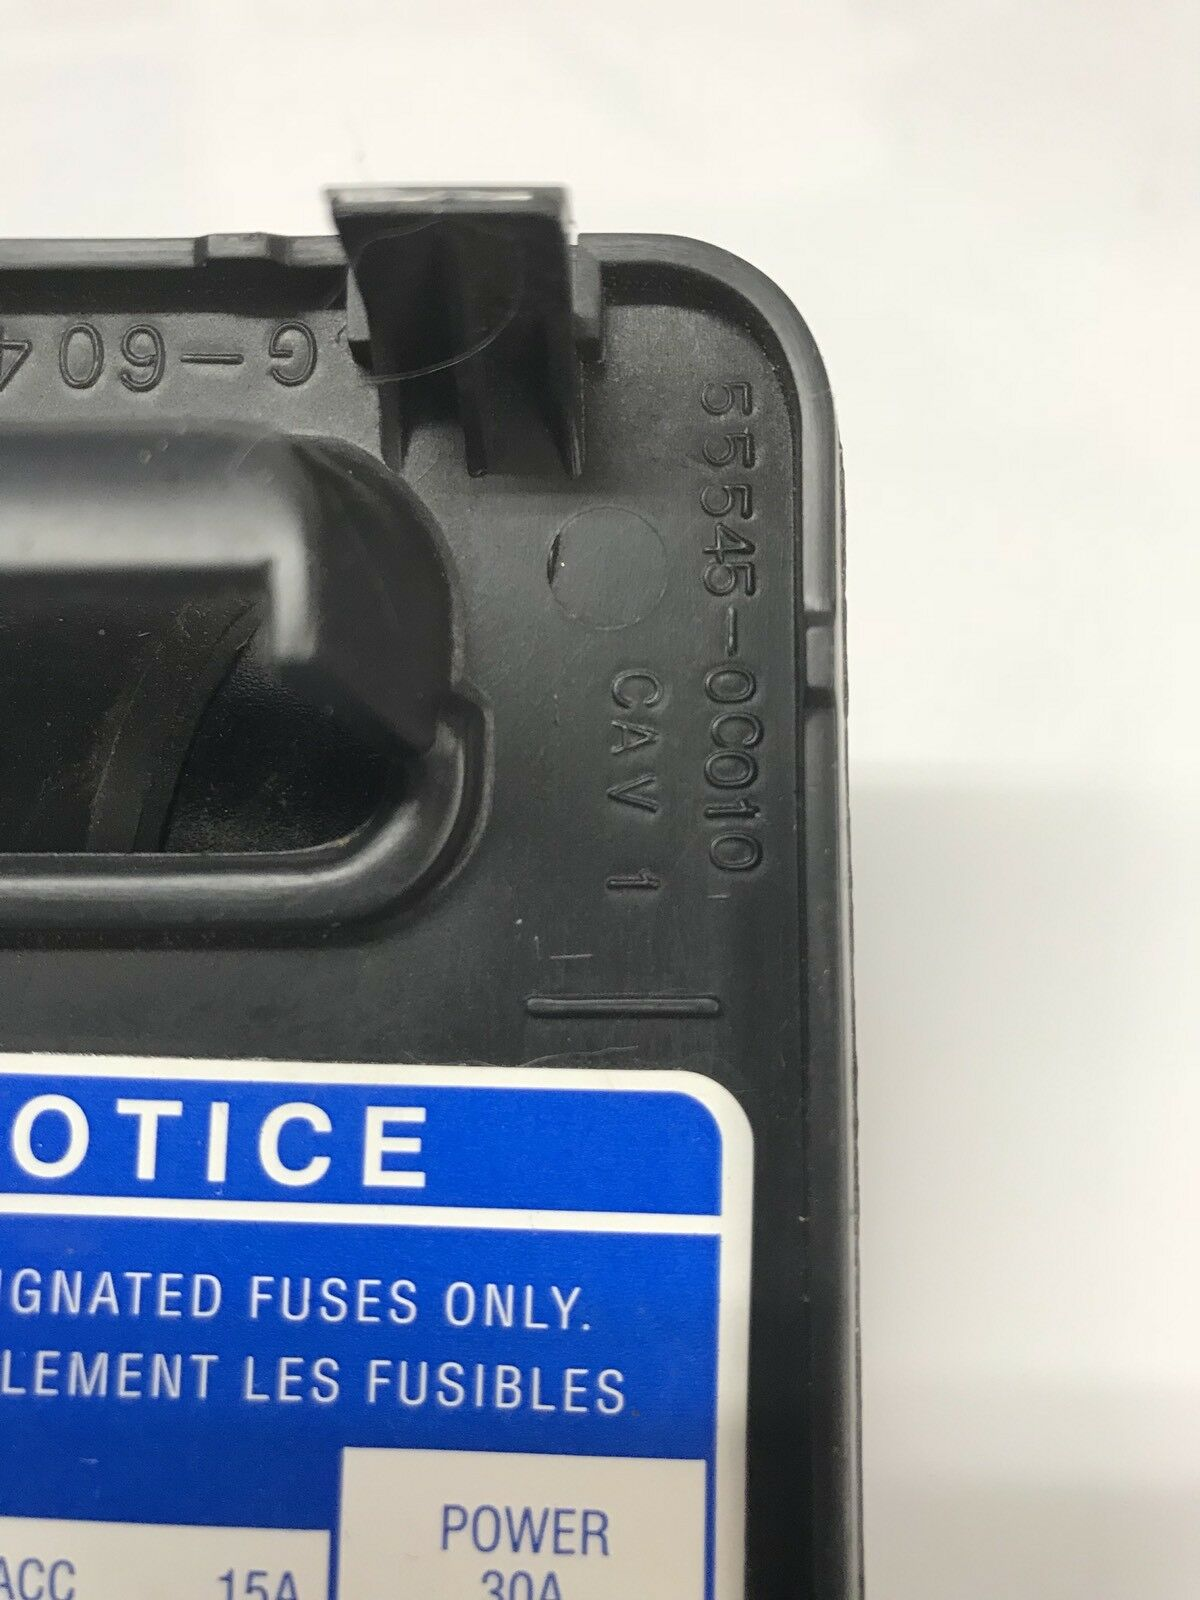 Toyota Tundra Sequoia Fuse Cover Black 2000-2006 OEM Free Shipping